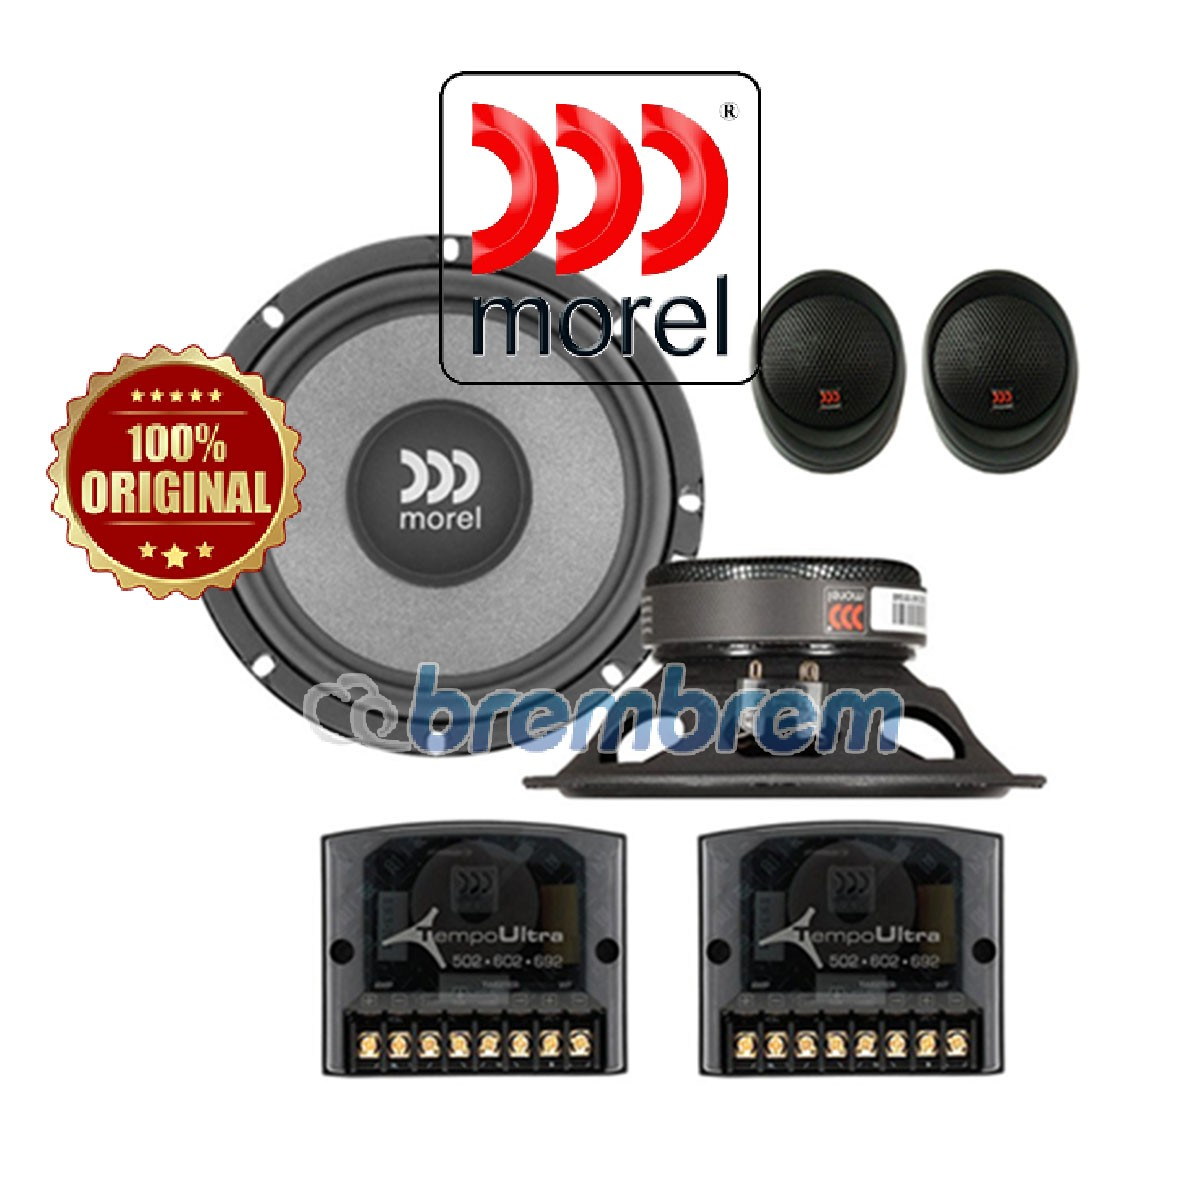 MOREL TEMPO ULTRA 602 - SPEAKER 2 WAY